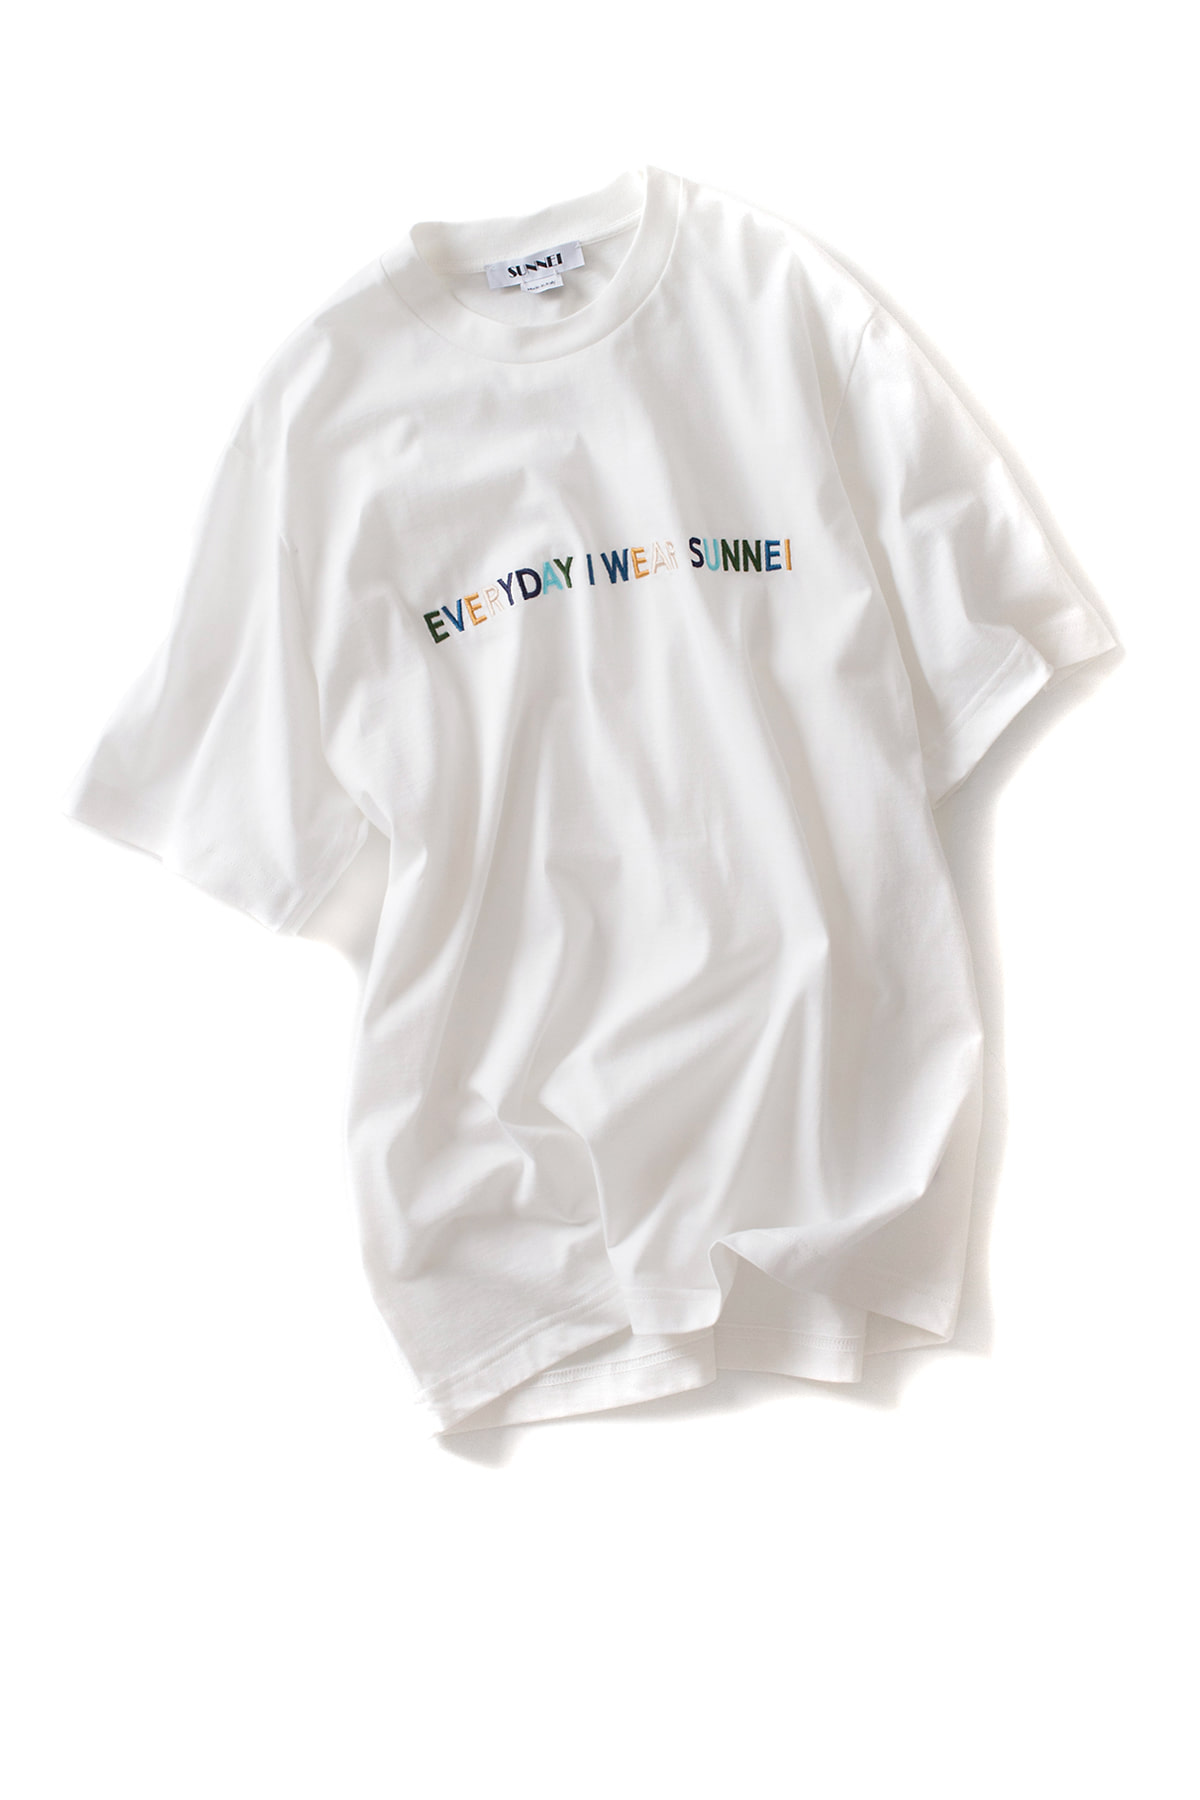 SUNNEI : Lettering T-Shirt Jersey (Everyday I Wear SUNNEI)